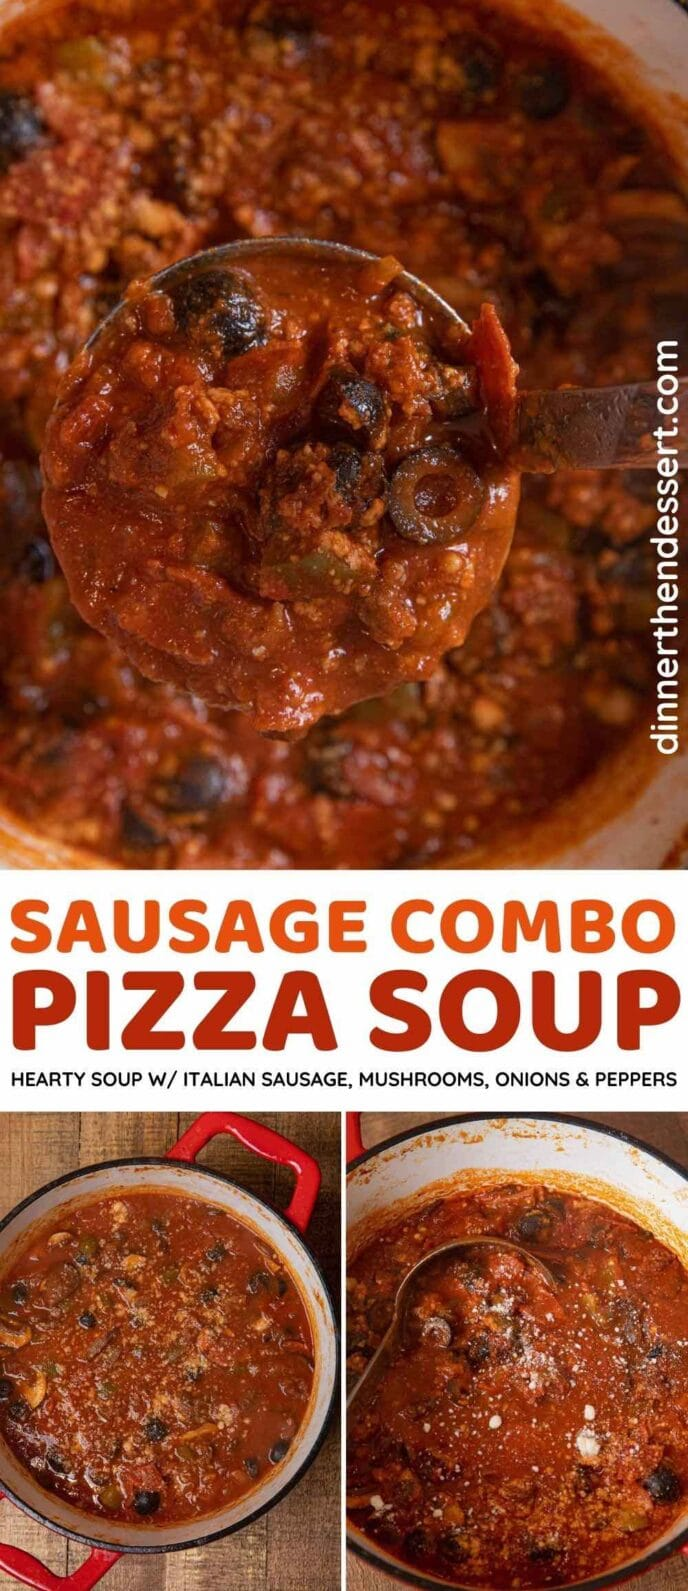 Sausage Combo Pizza Soup collage